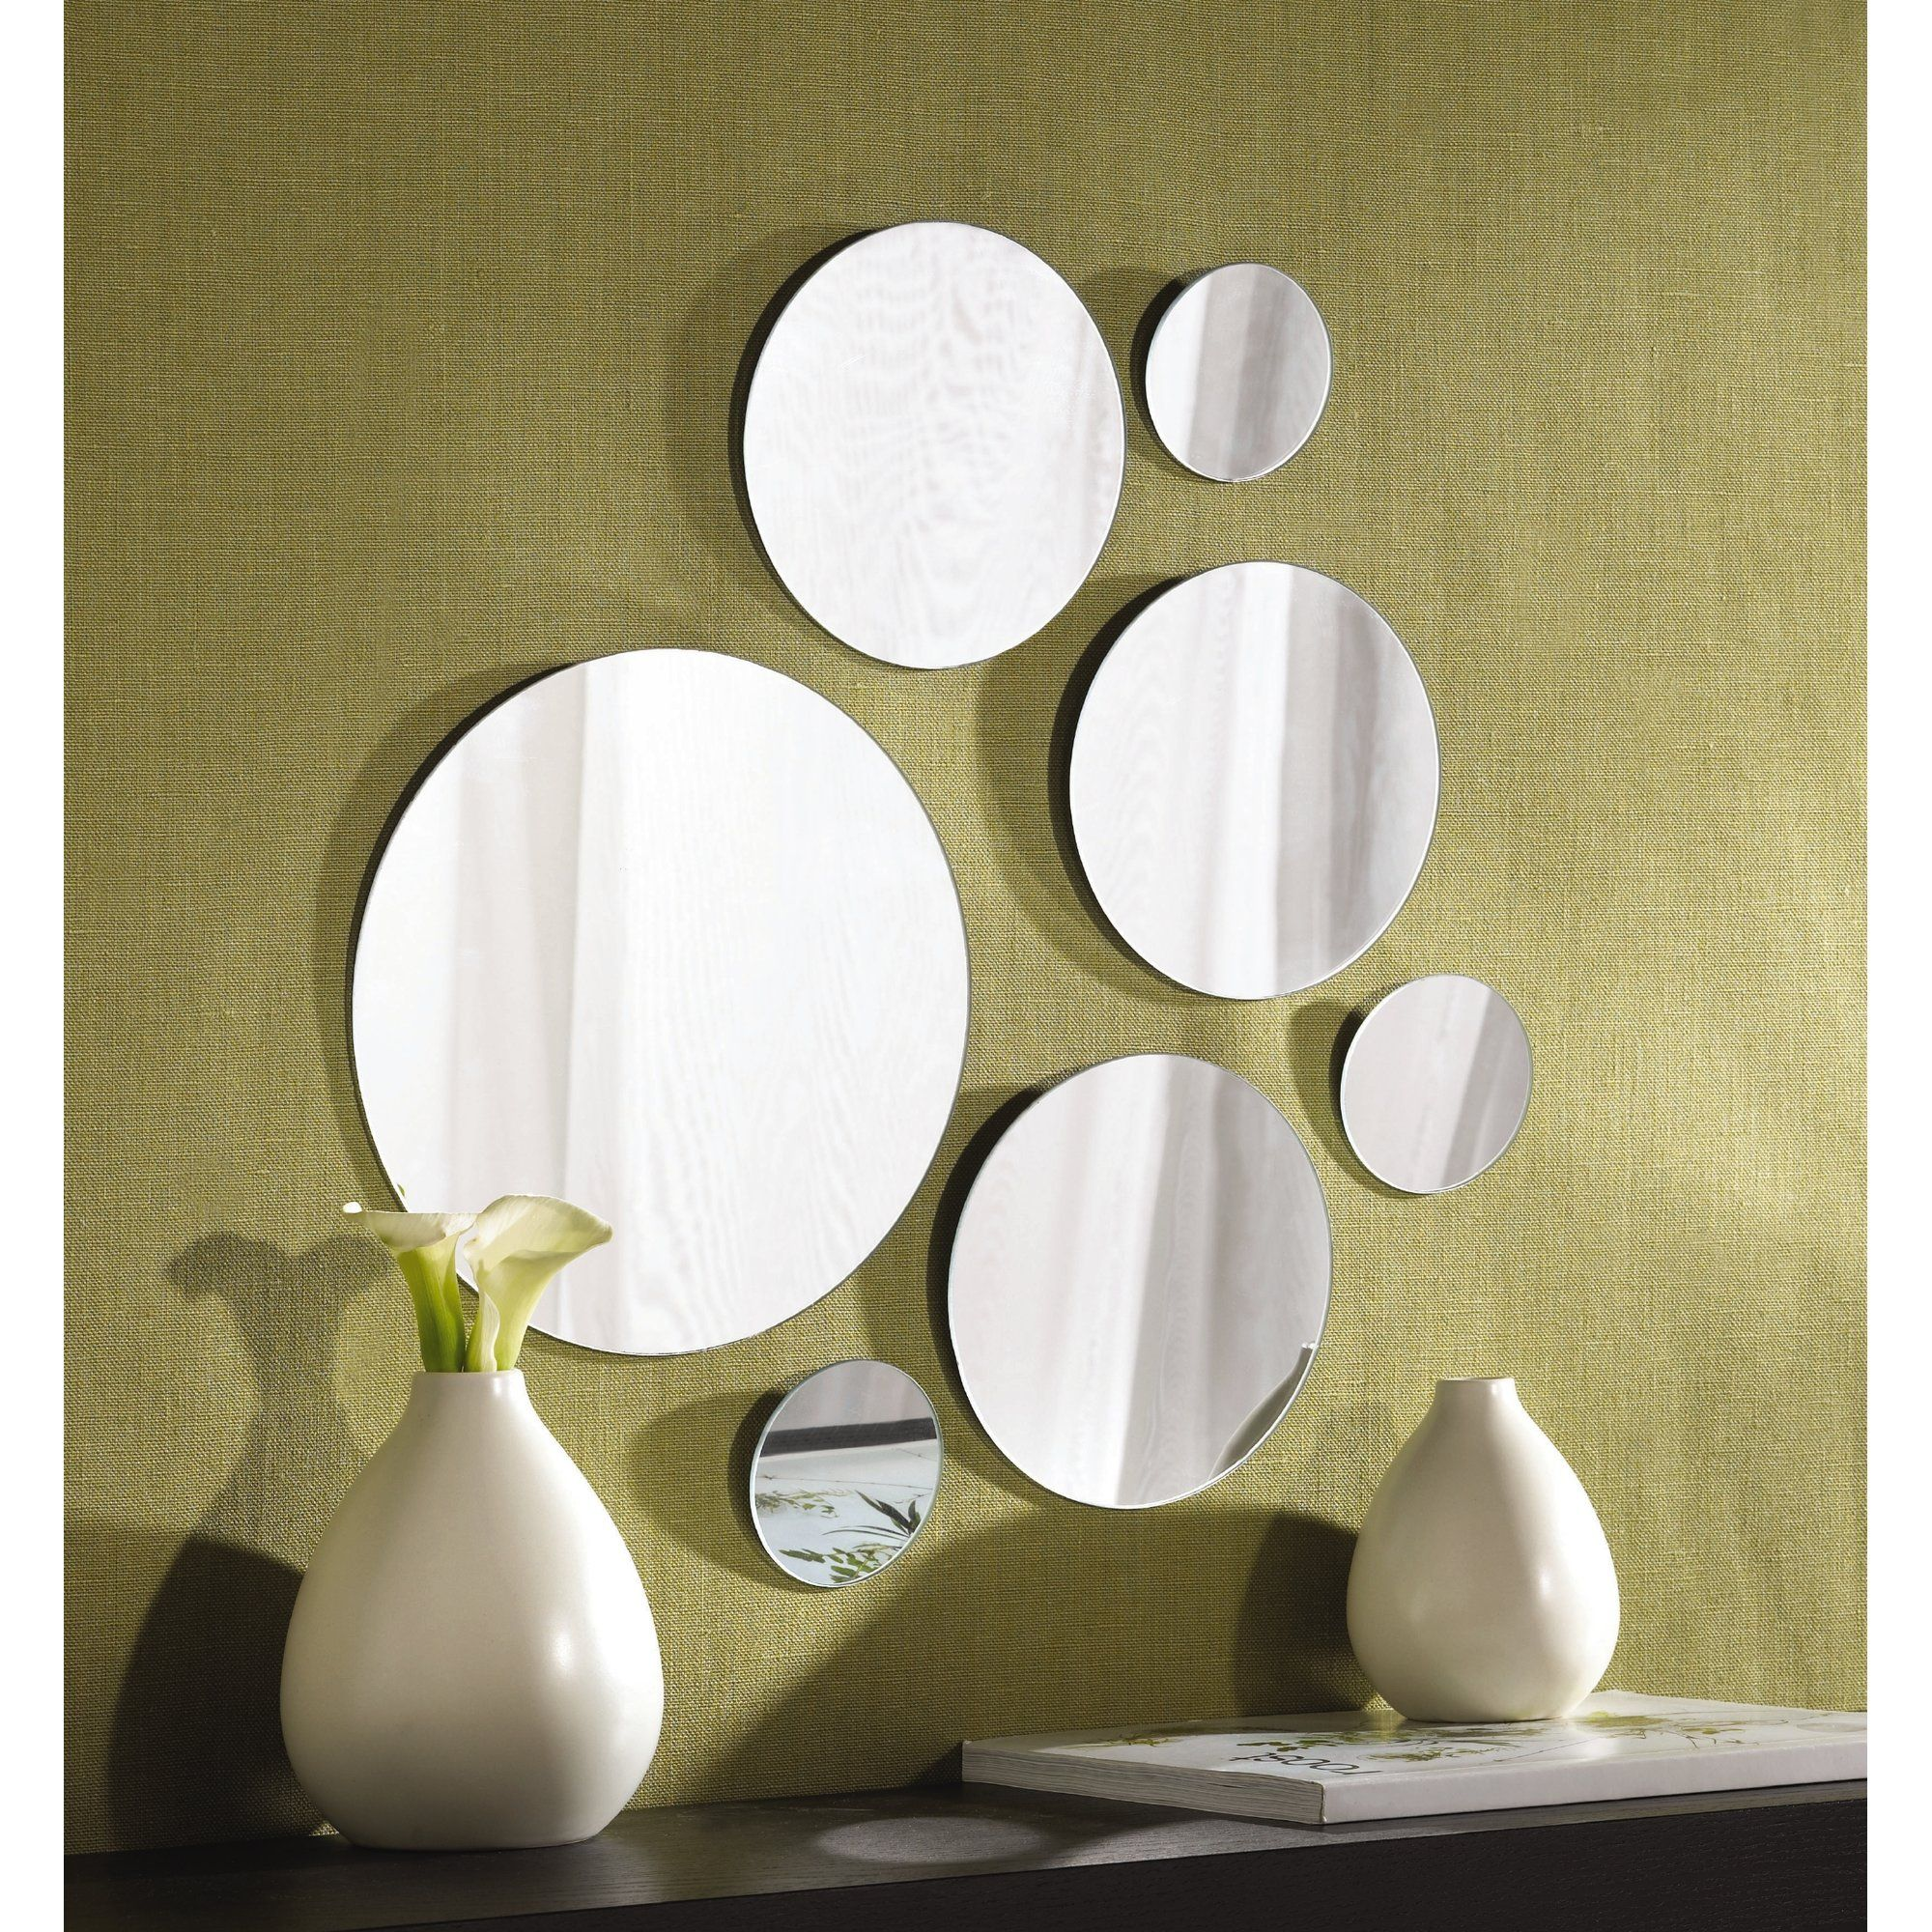 7 Piece Round Glass Mirror Set Home Decor Mirrors Living Room Decor Cozy Mirror Decor